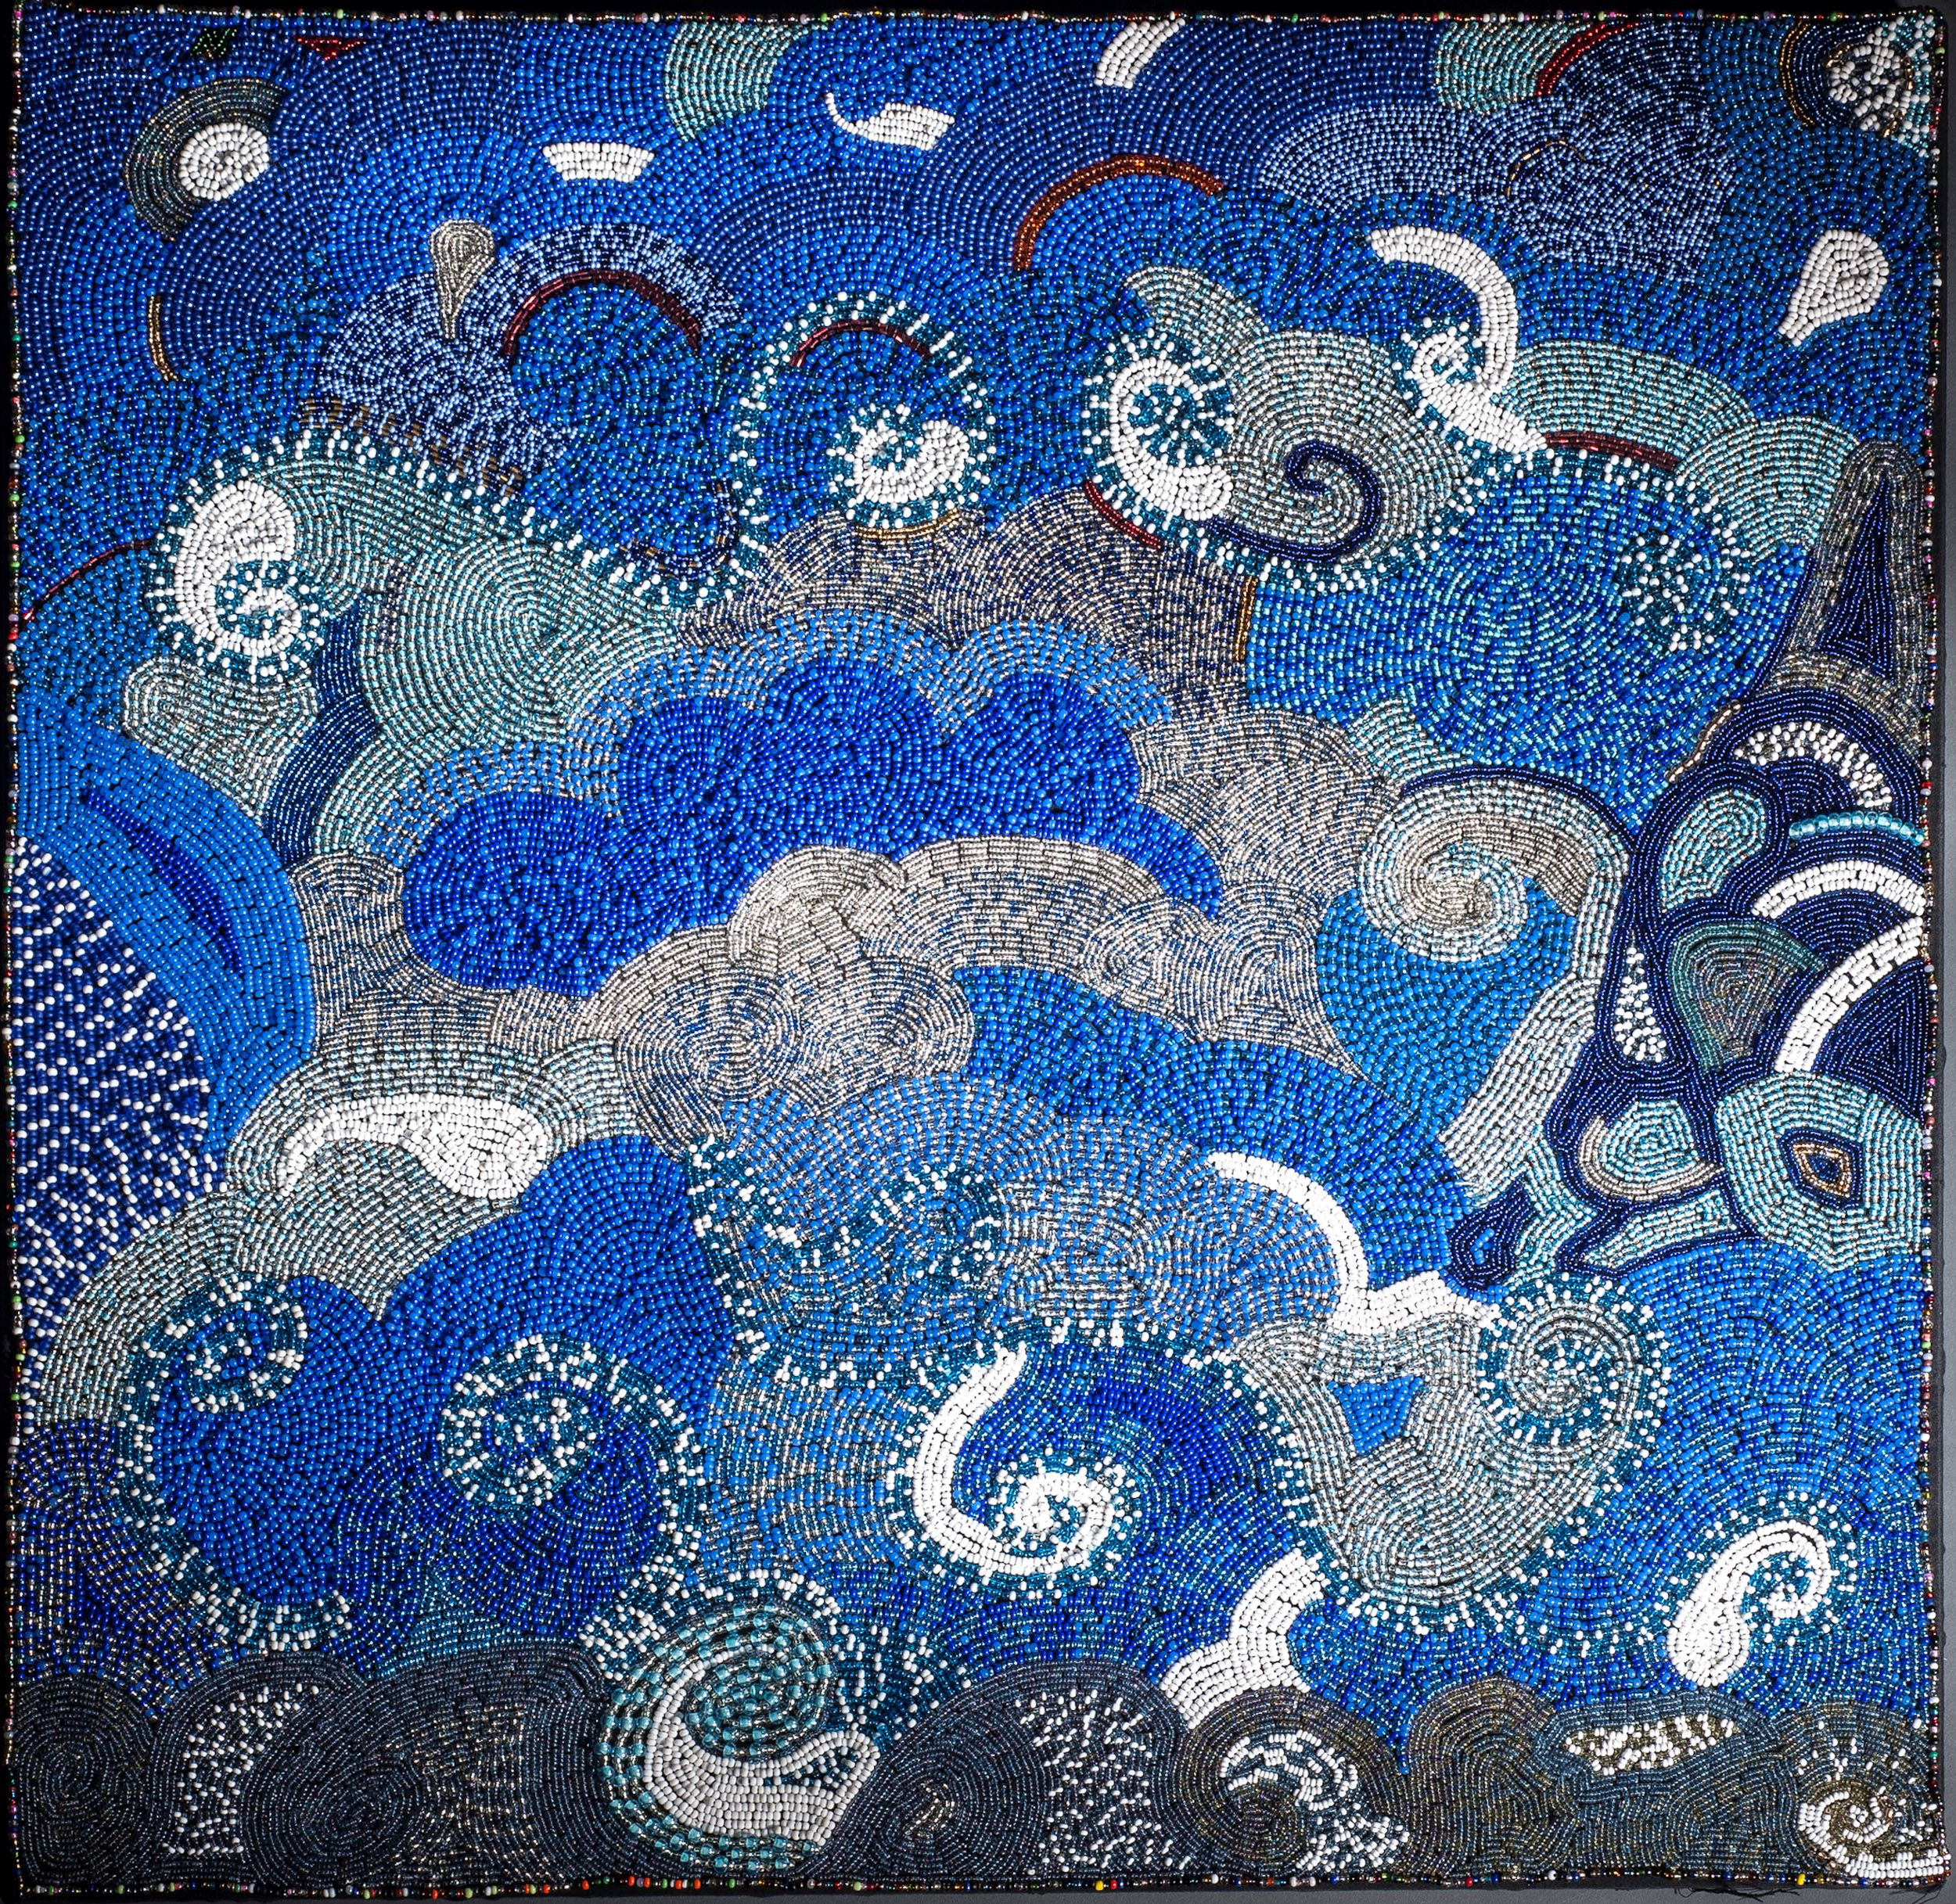 An image of radiating blue and grey clouds made out of glass beads sewn onto fabric